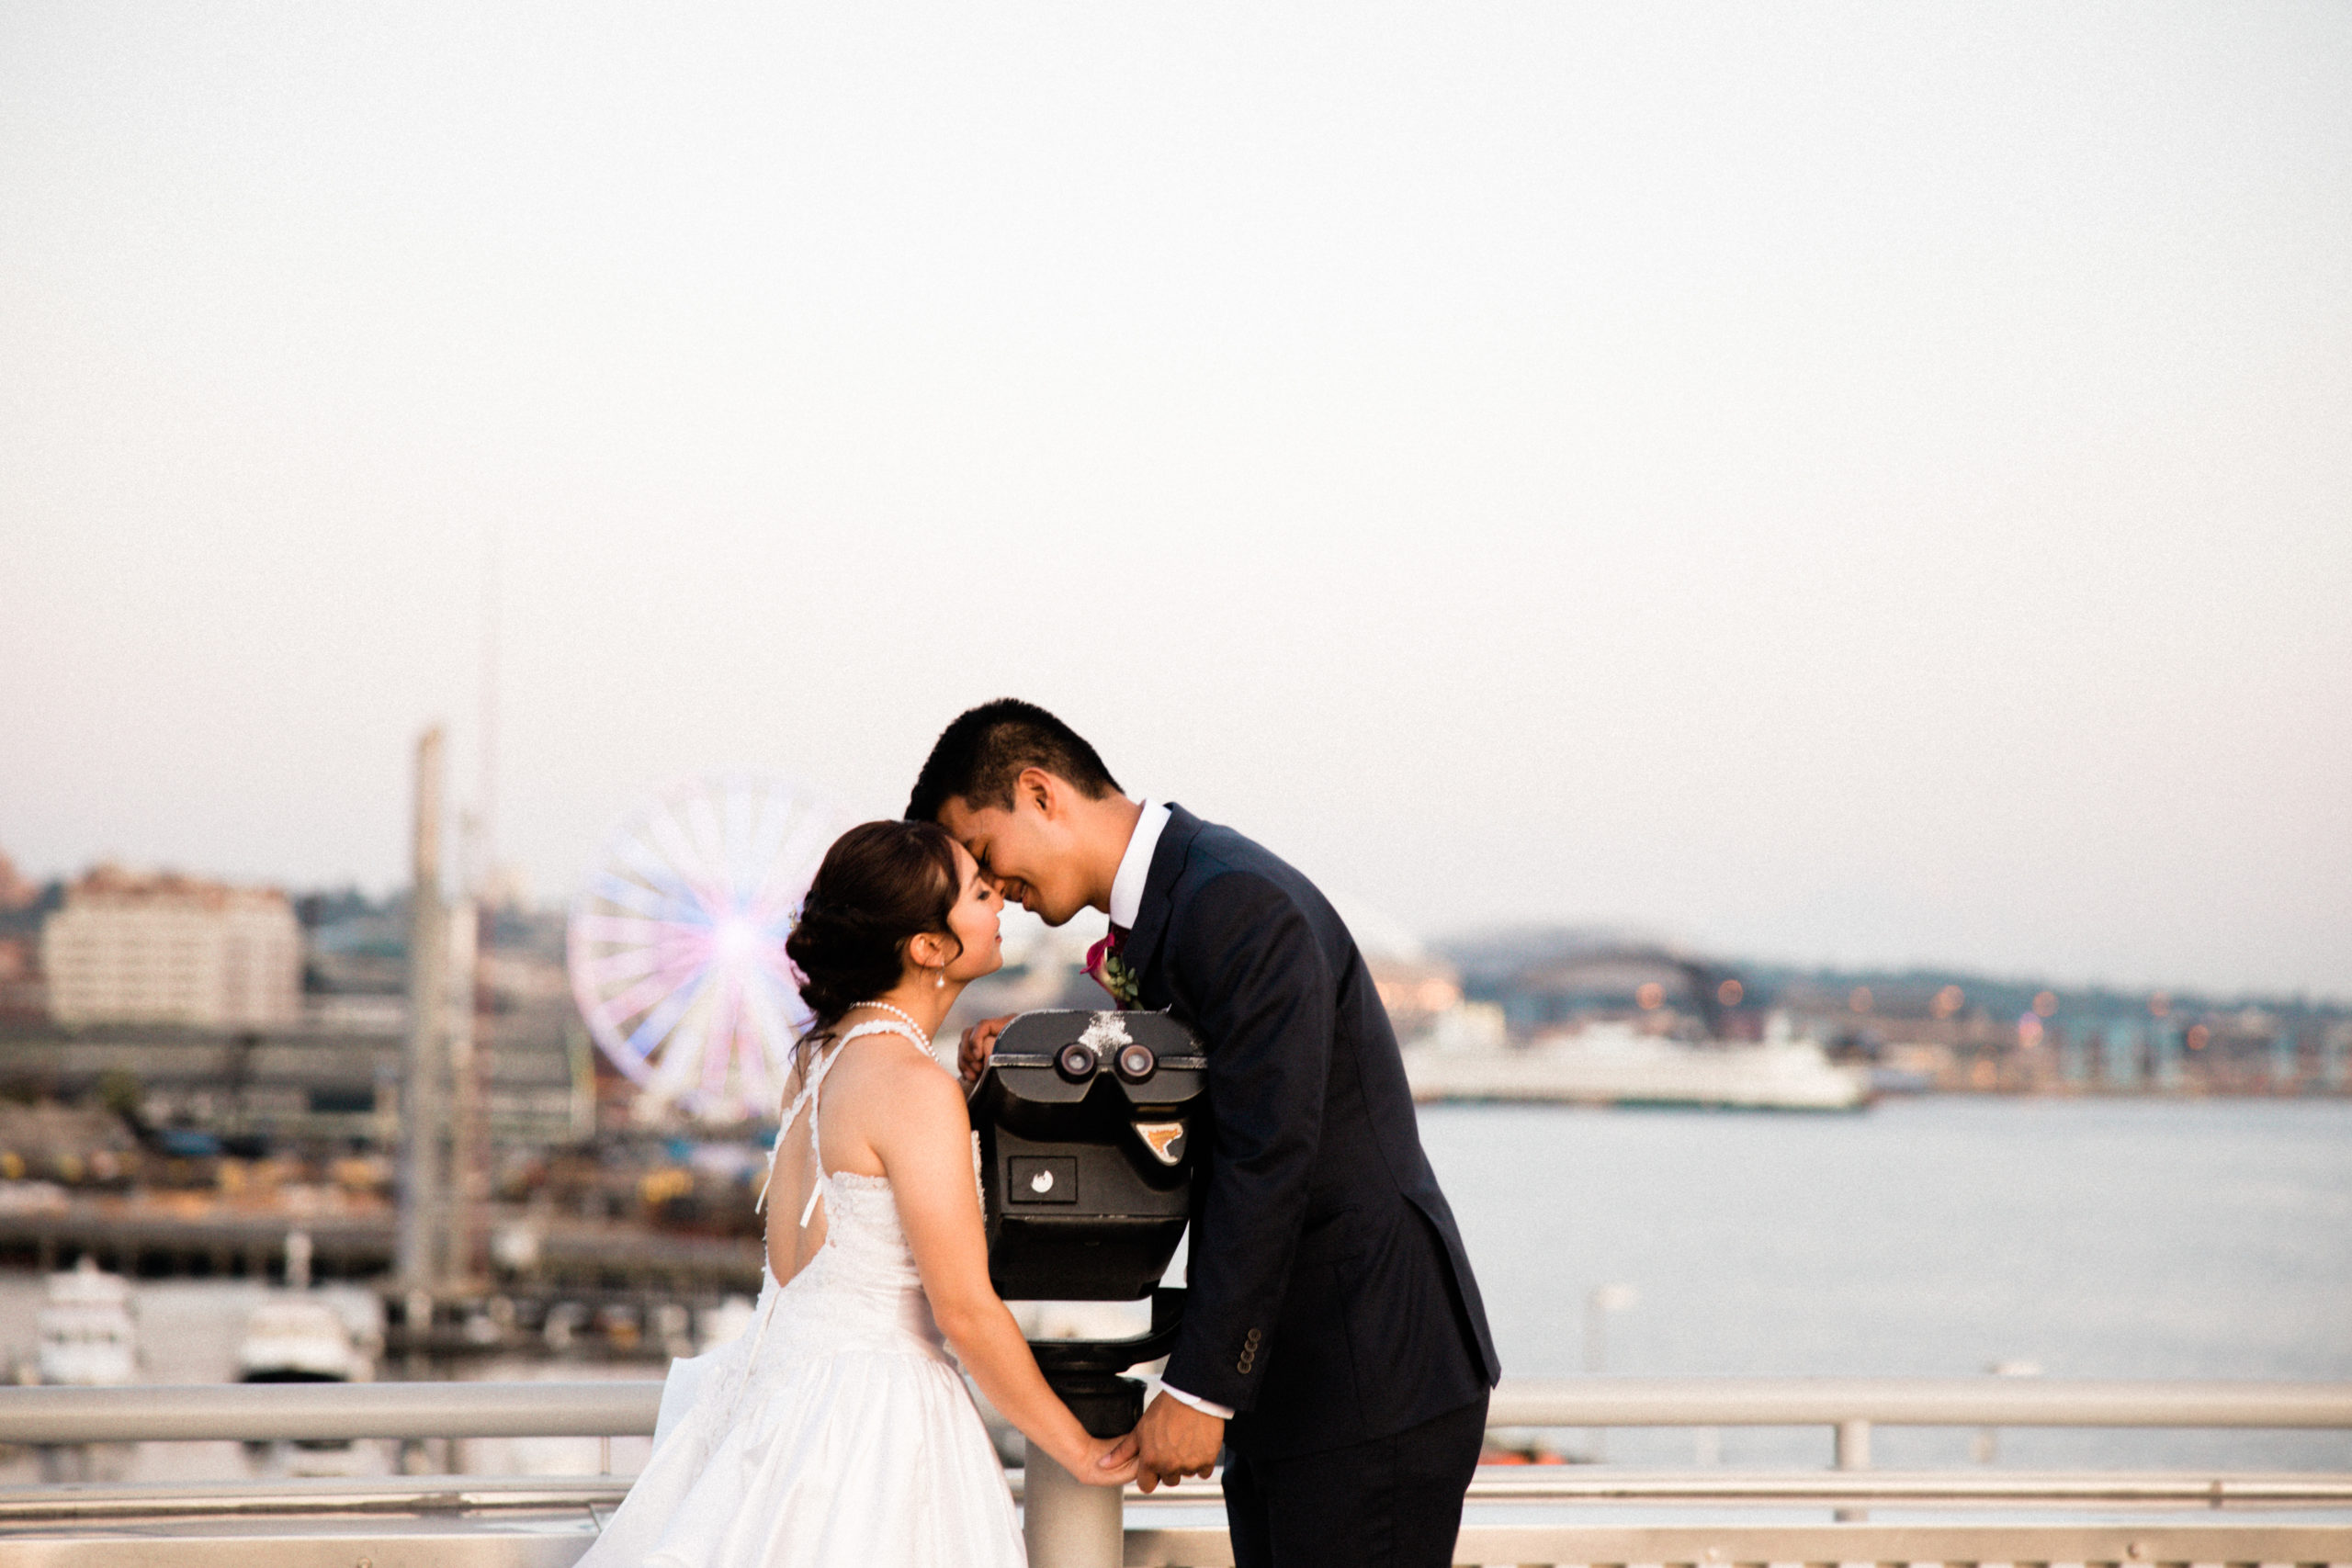 couples photos outside edgewater hotel with seattle great wheel and ferries in the distance